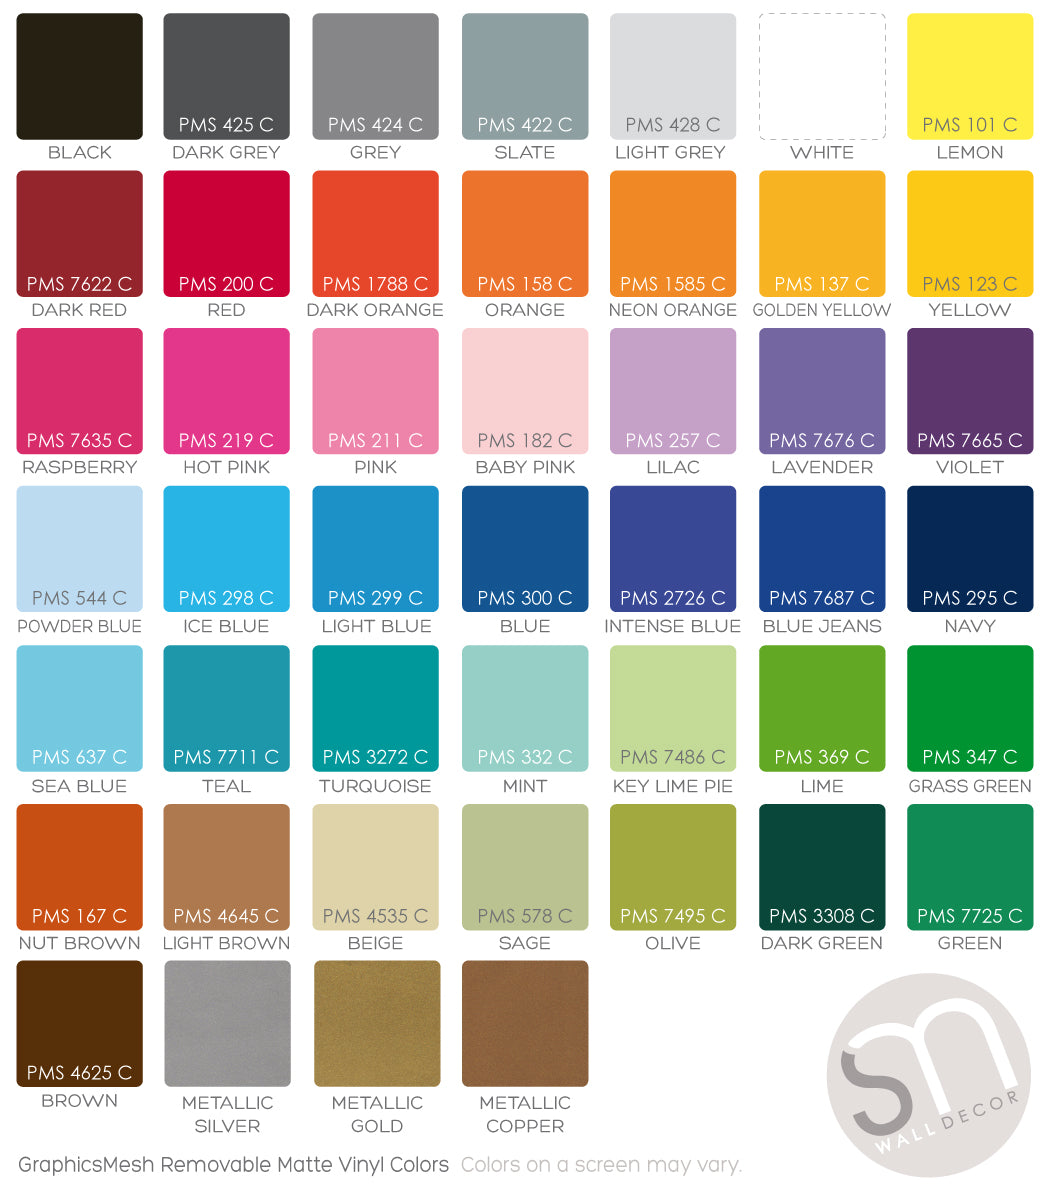 19 dulux paint color samples blues and greens at for Color charts for painting walls